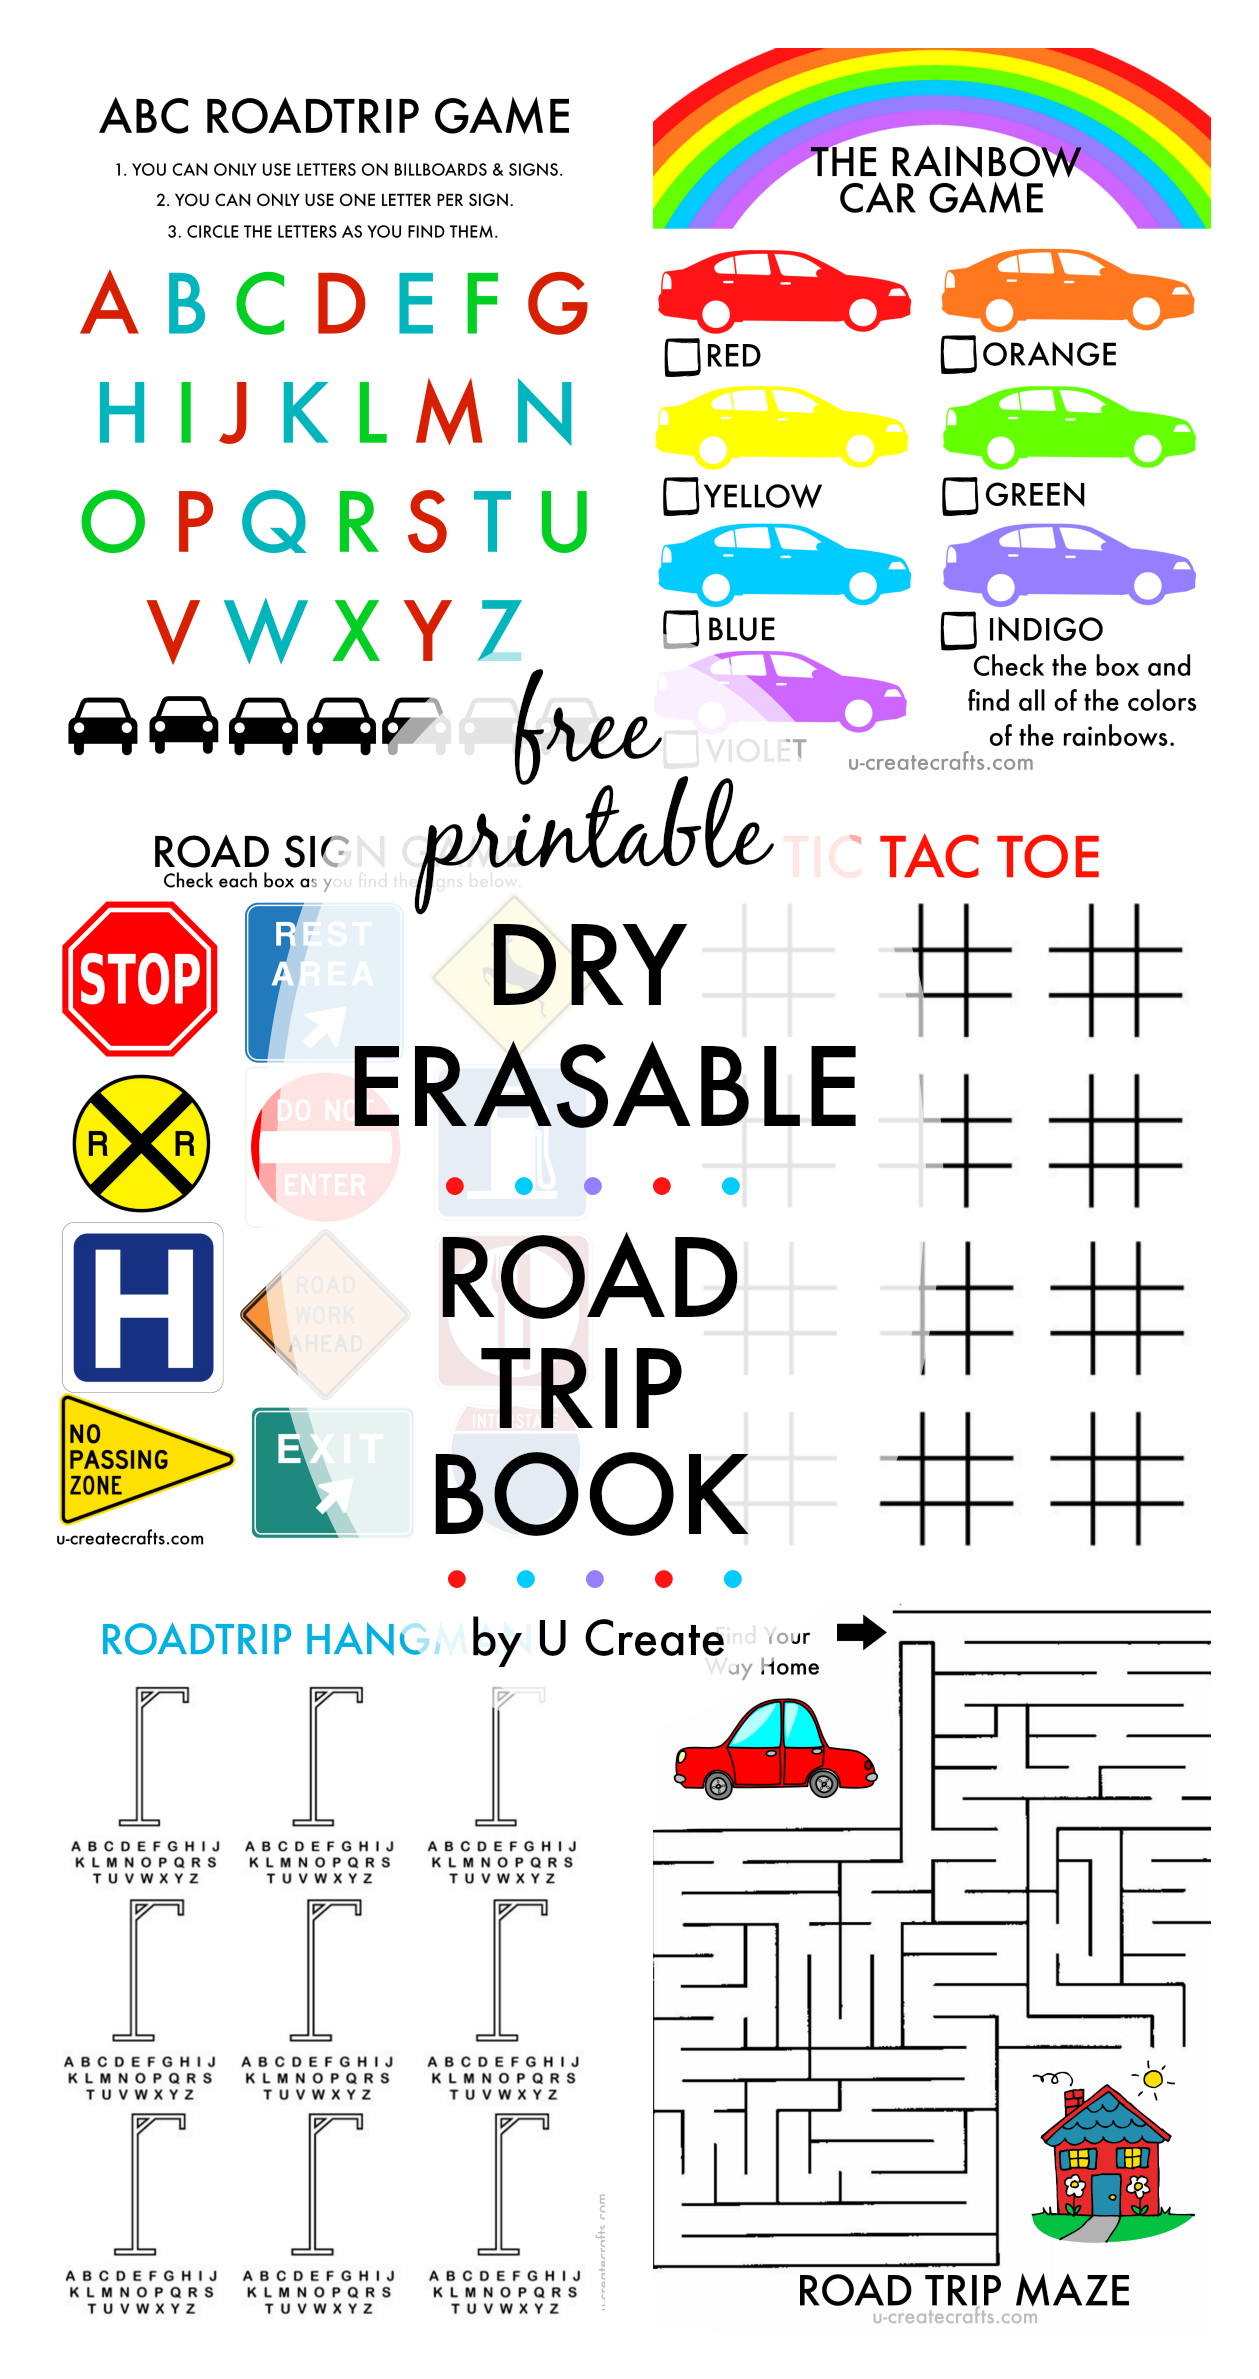 free printable dry erasable road trip book for kids awesome idea